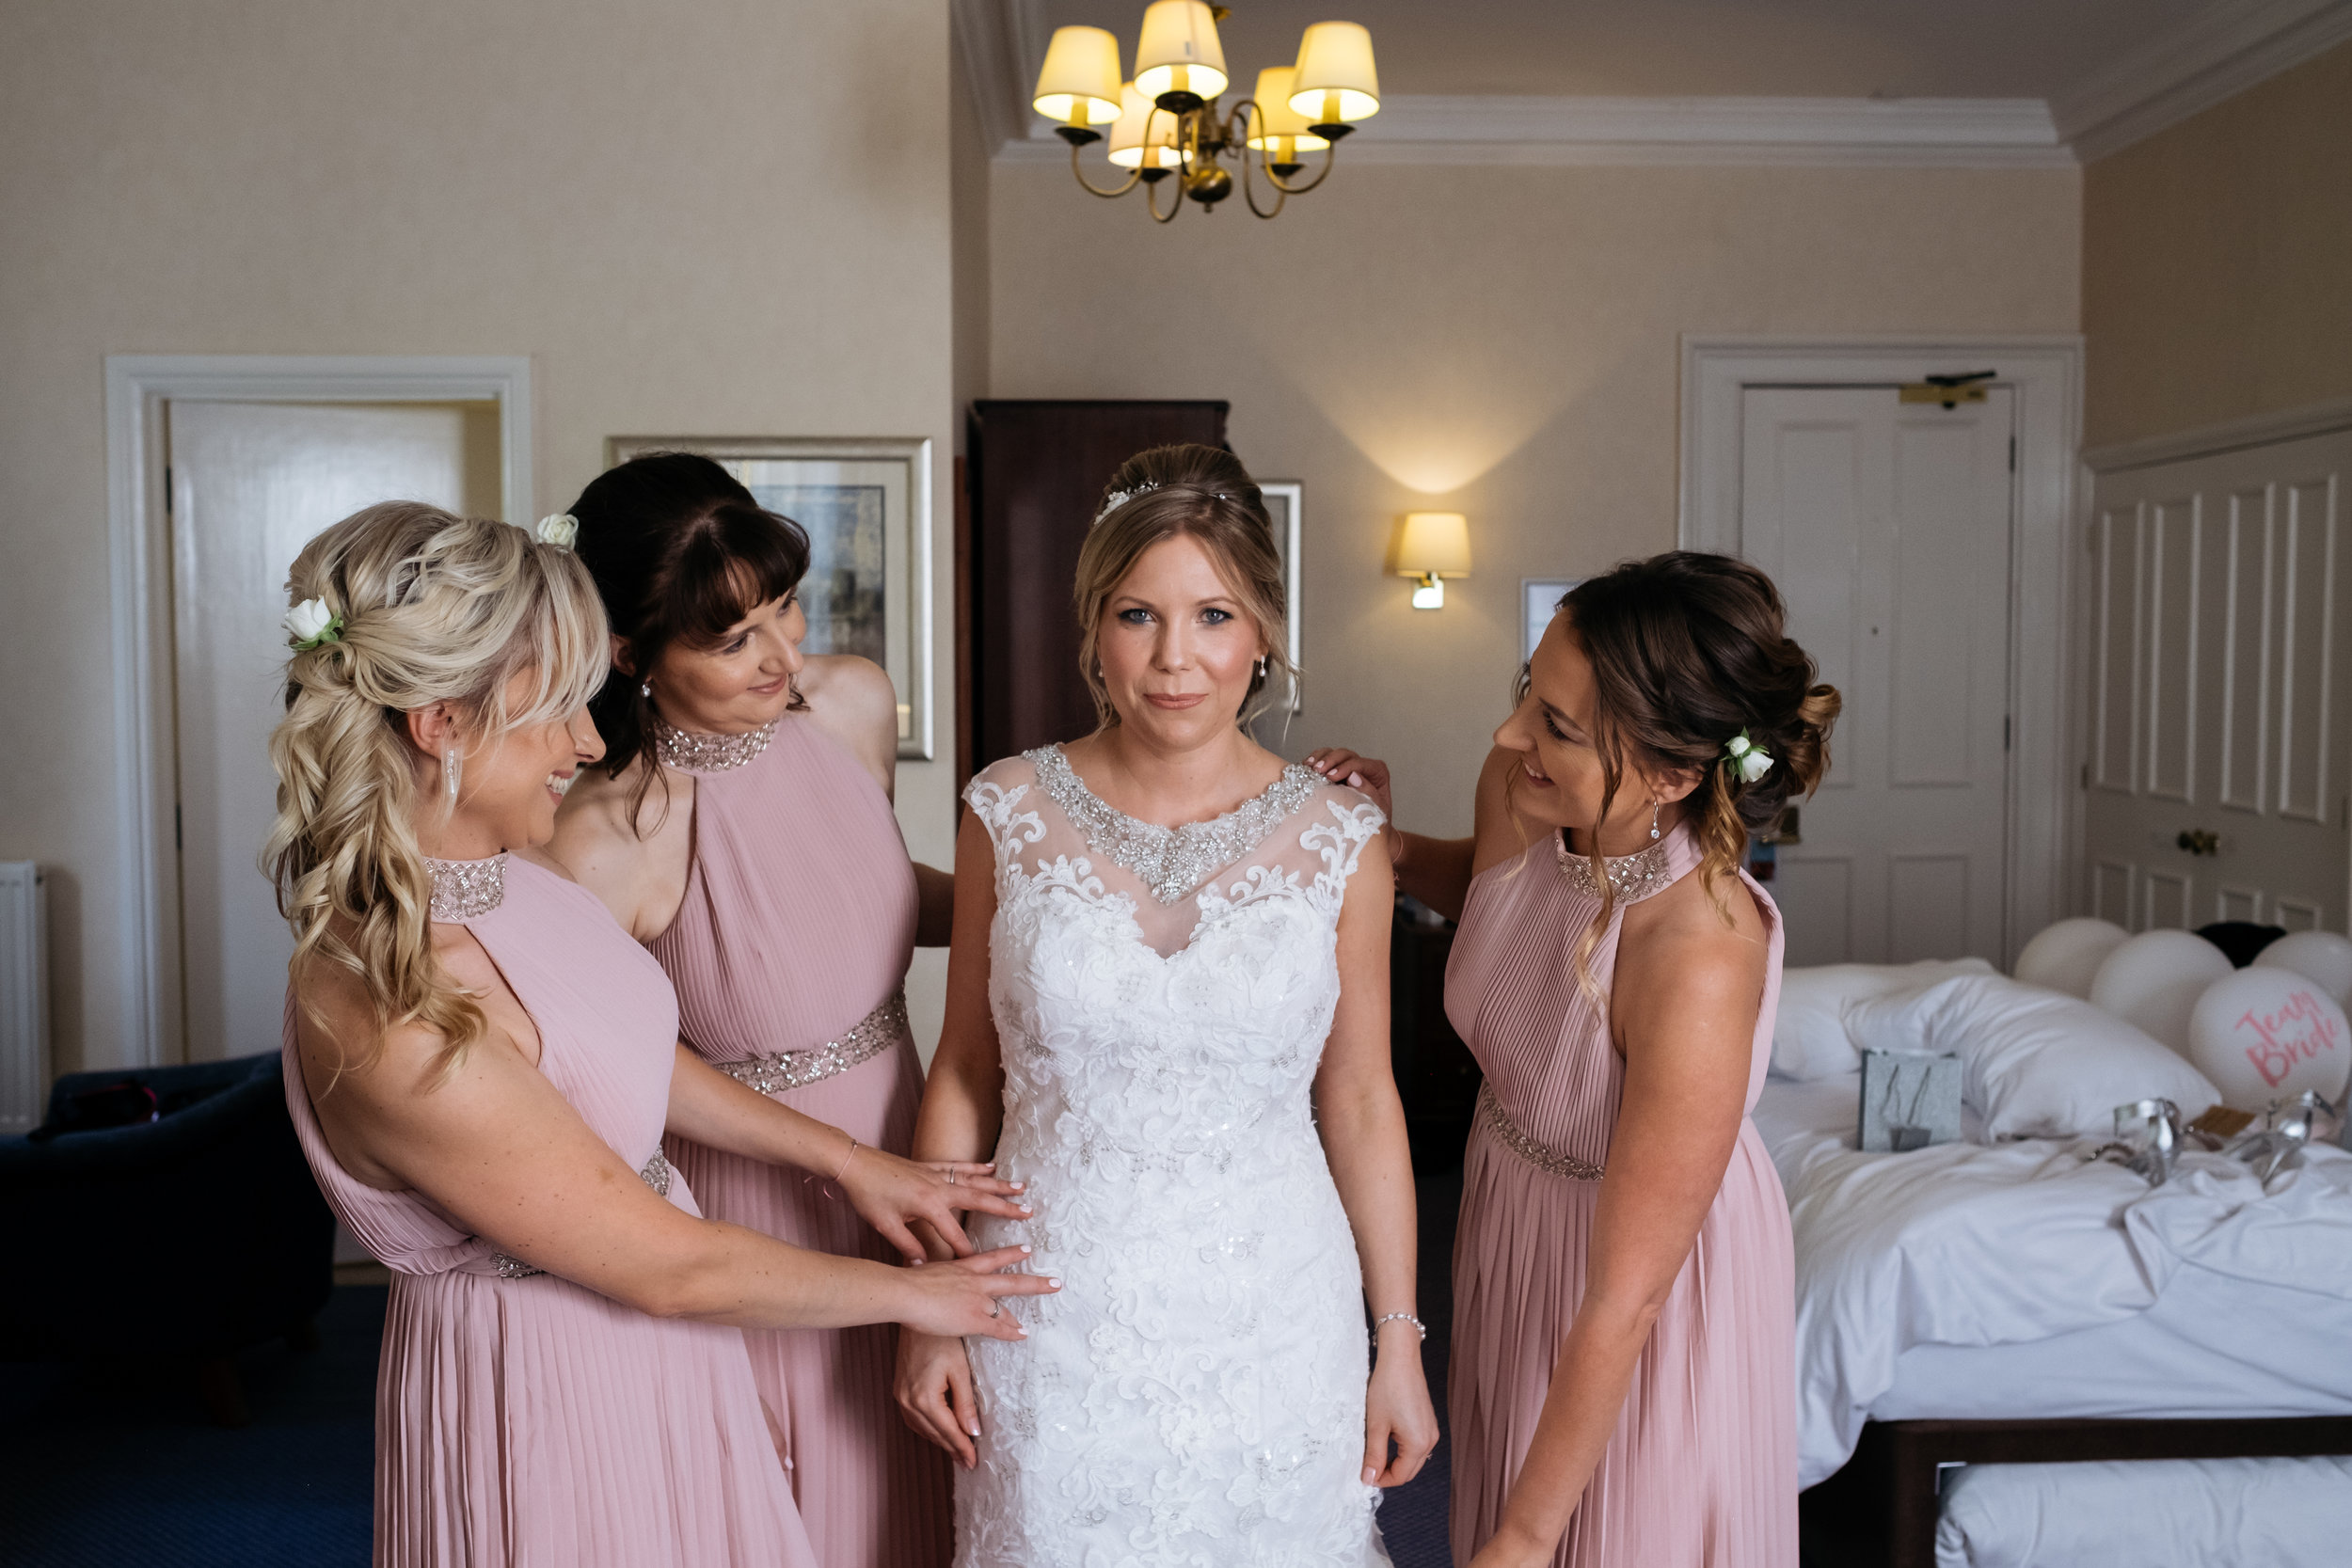 Bridesmaids helping bride get ready on morning of wedding